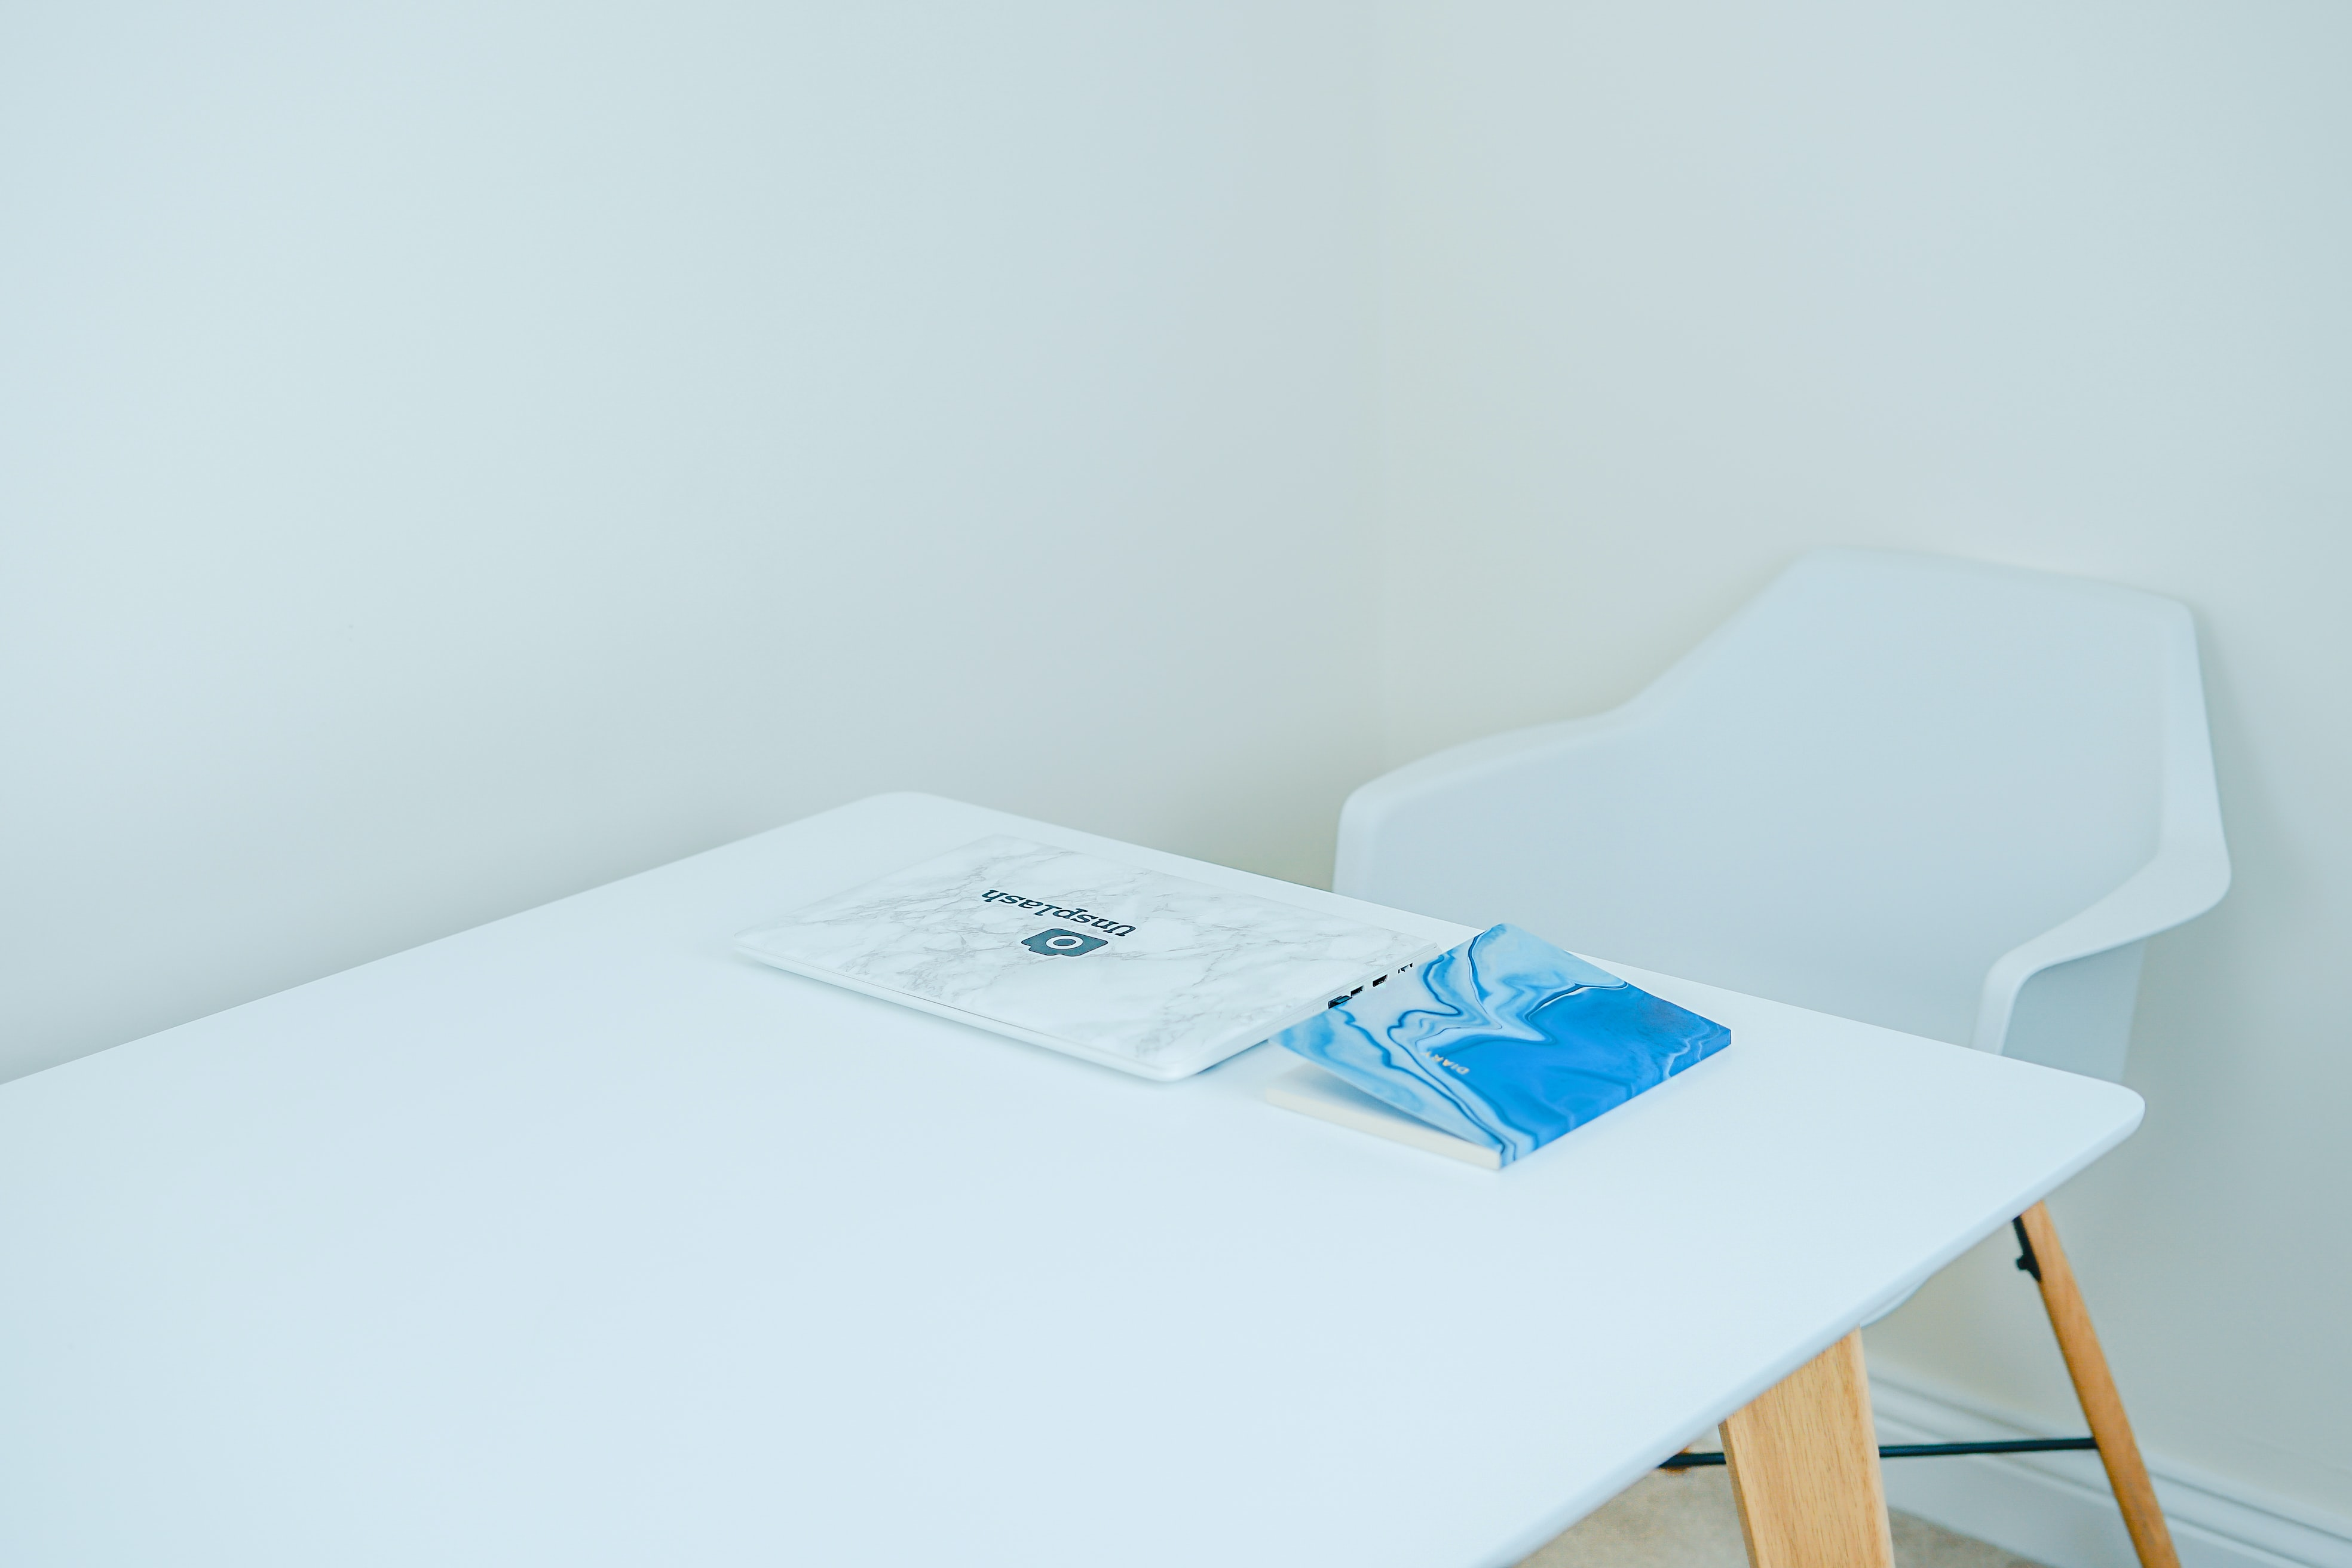 blue covered book on white table with armchair in front